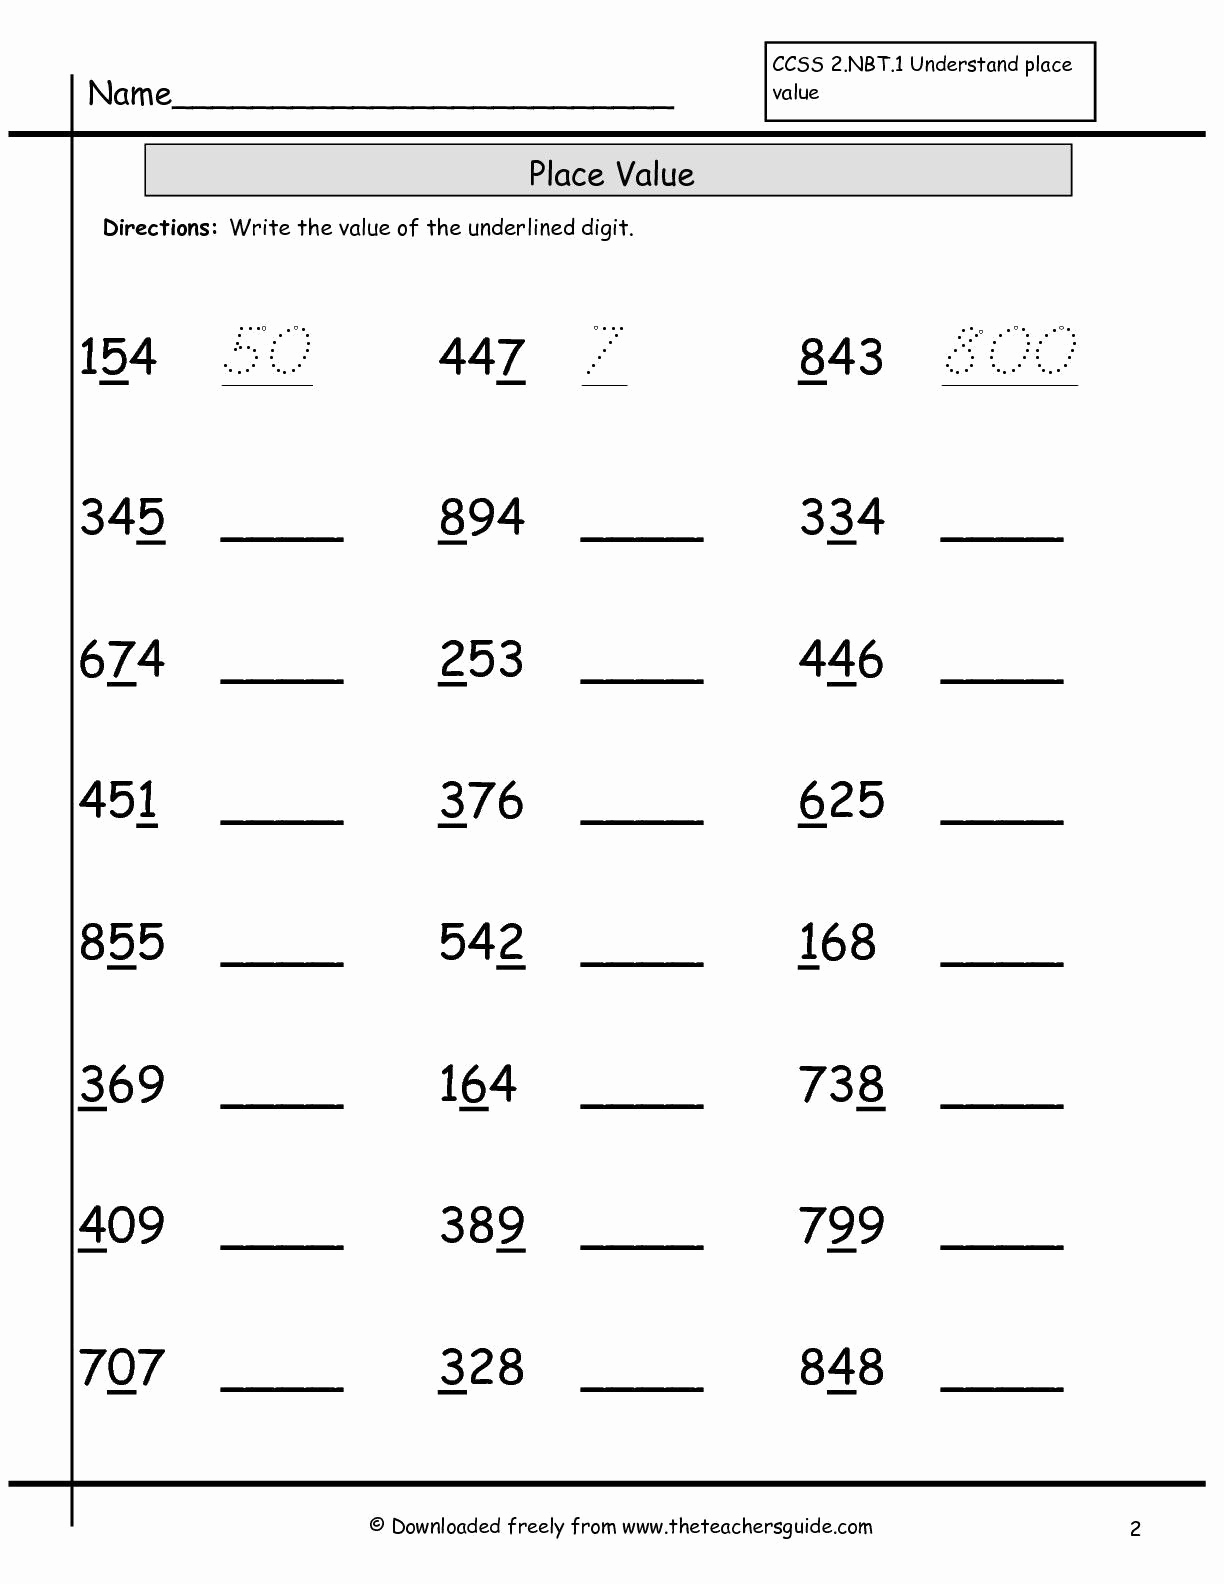 Place Value Worksheet 3rd Grade Awesome Place Value Worksheets 3rd Grade to Download Place Value